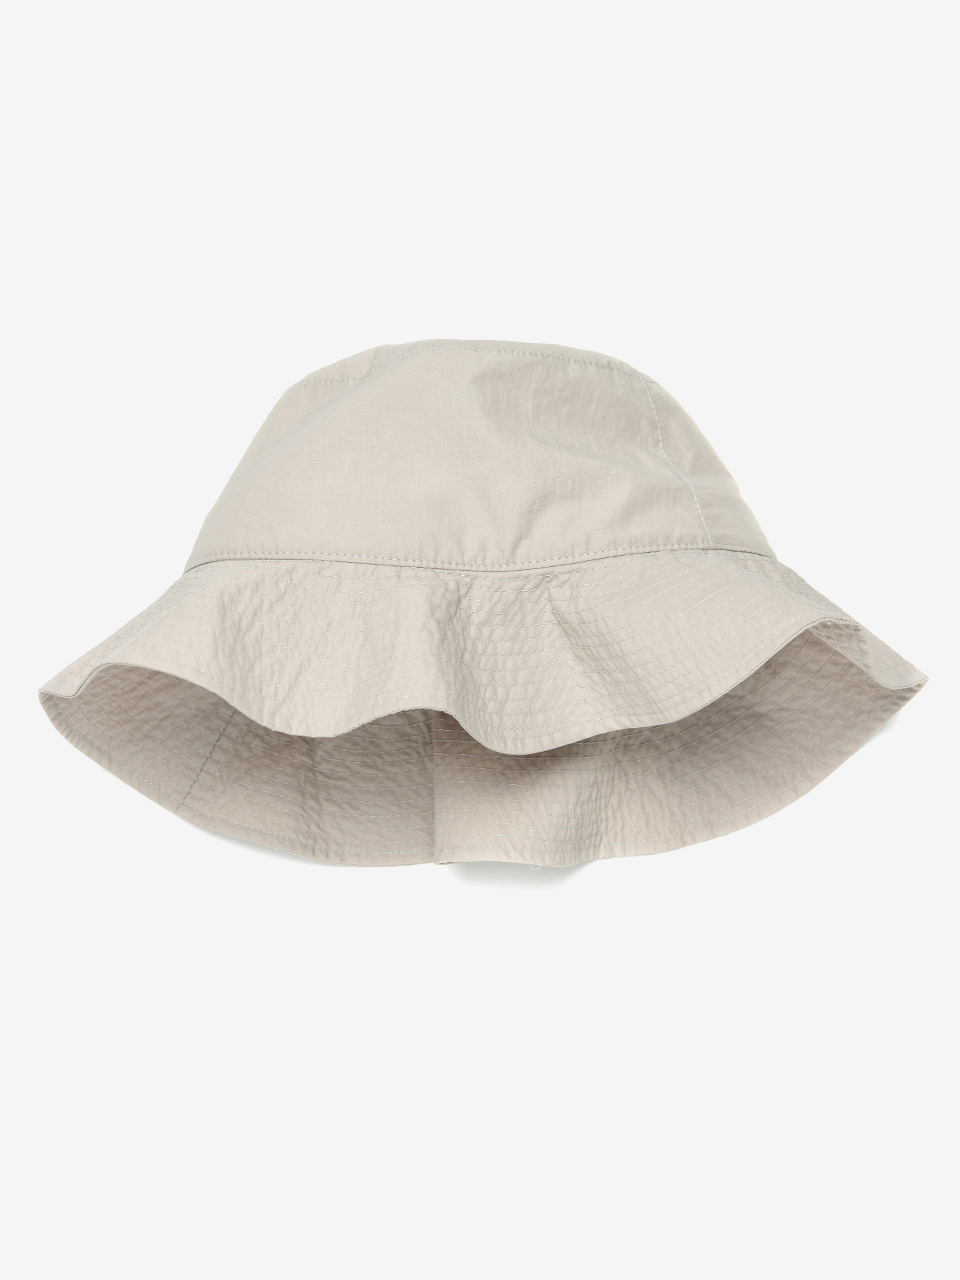 Serge Voyage Bucket Hat - LIGHT BEIGE